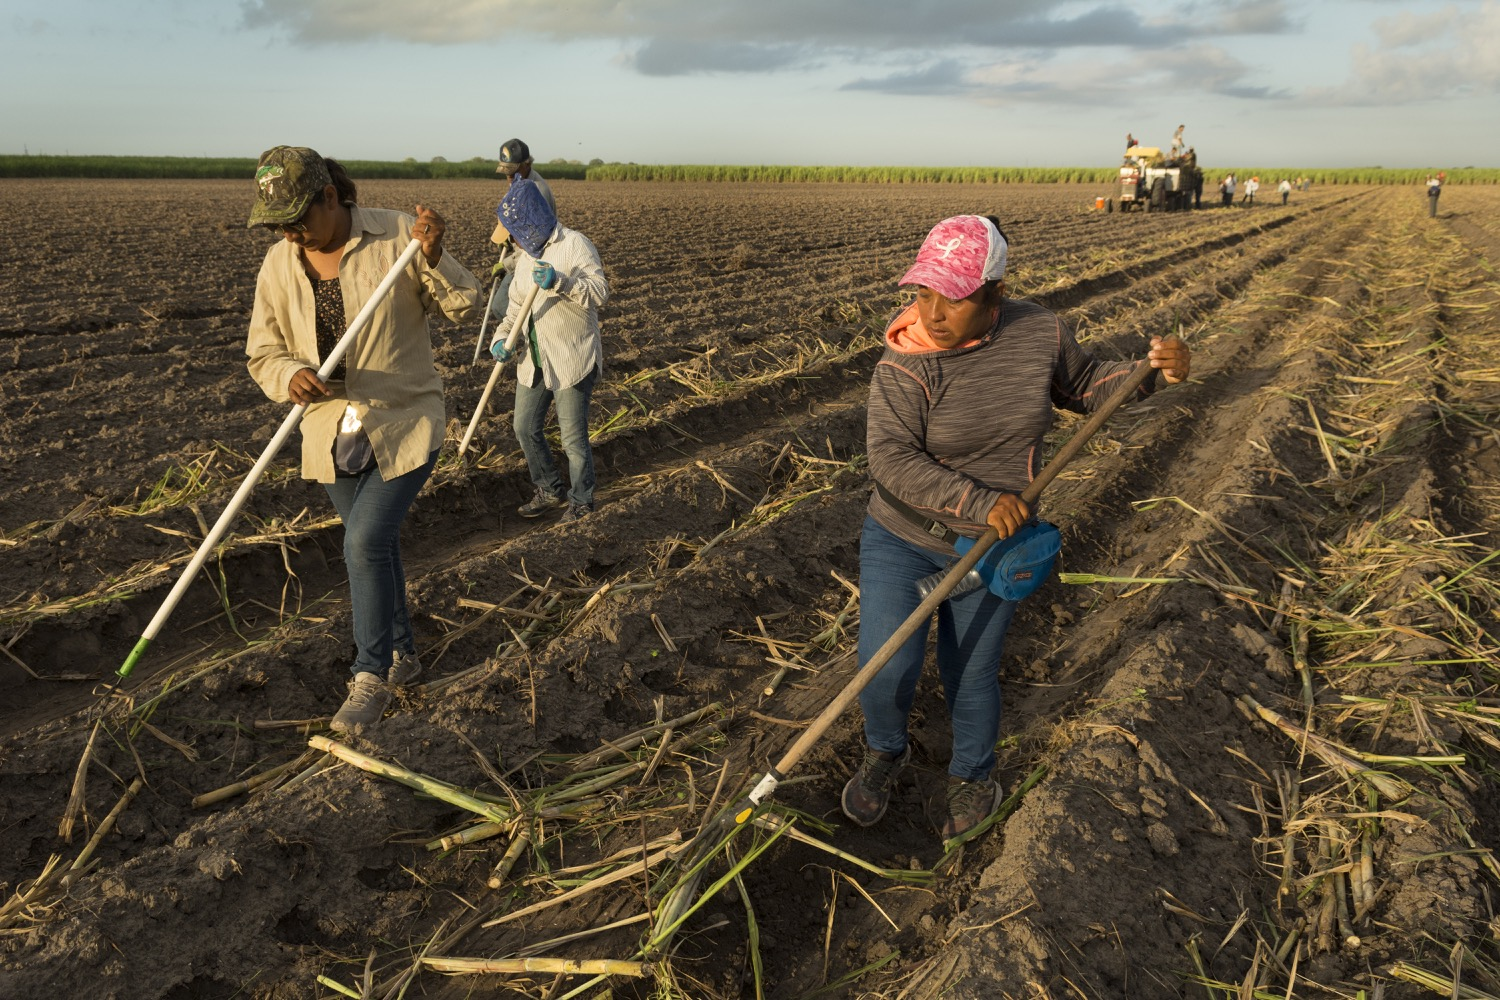 Day laborers rake sugar cane into rows in a field in South Texas.©2018/Jerry Redfern